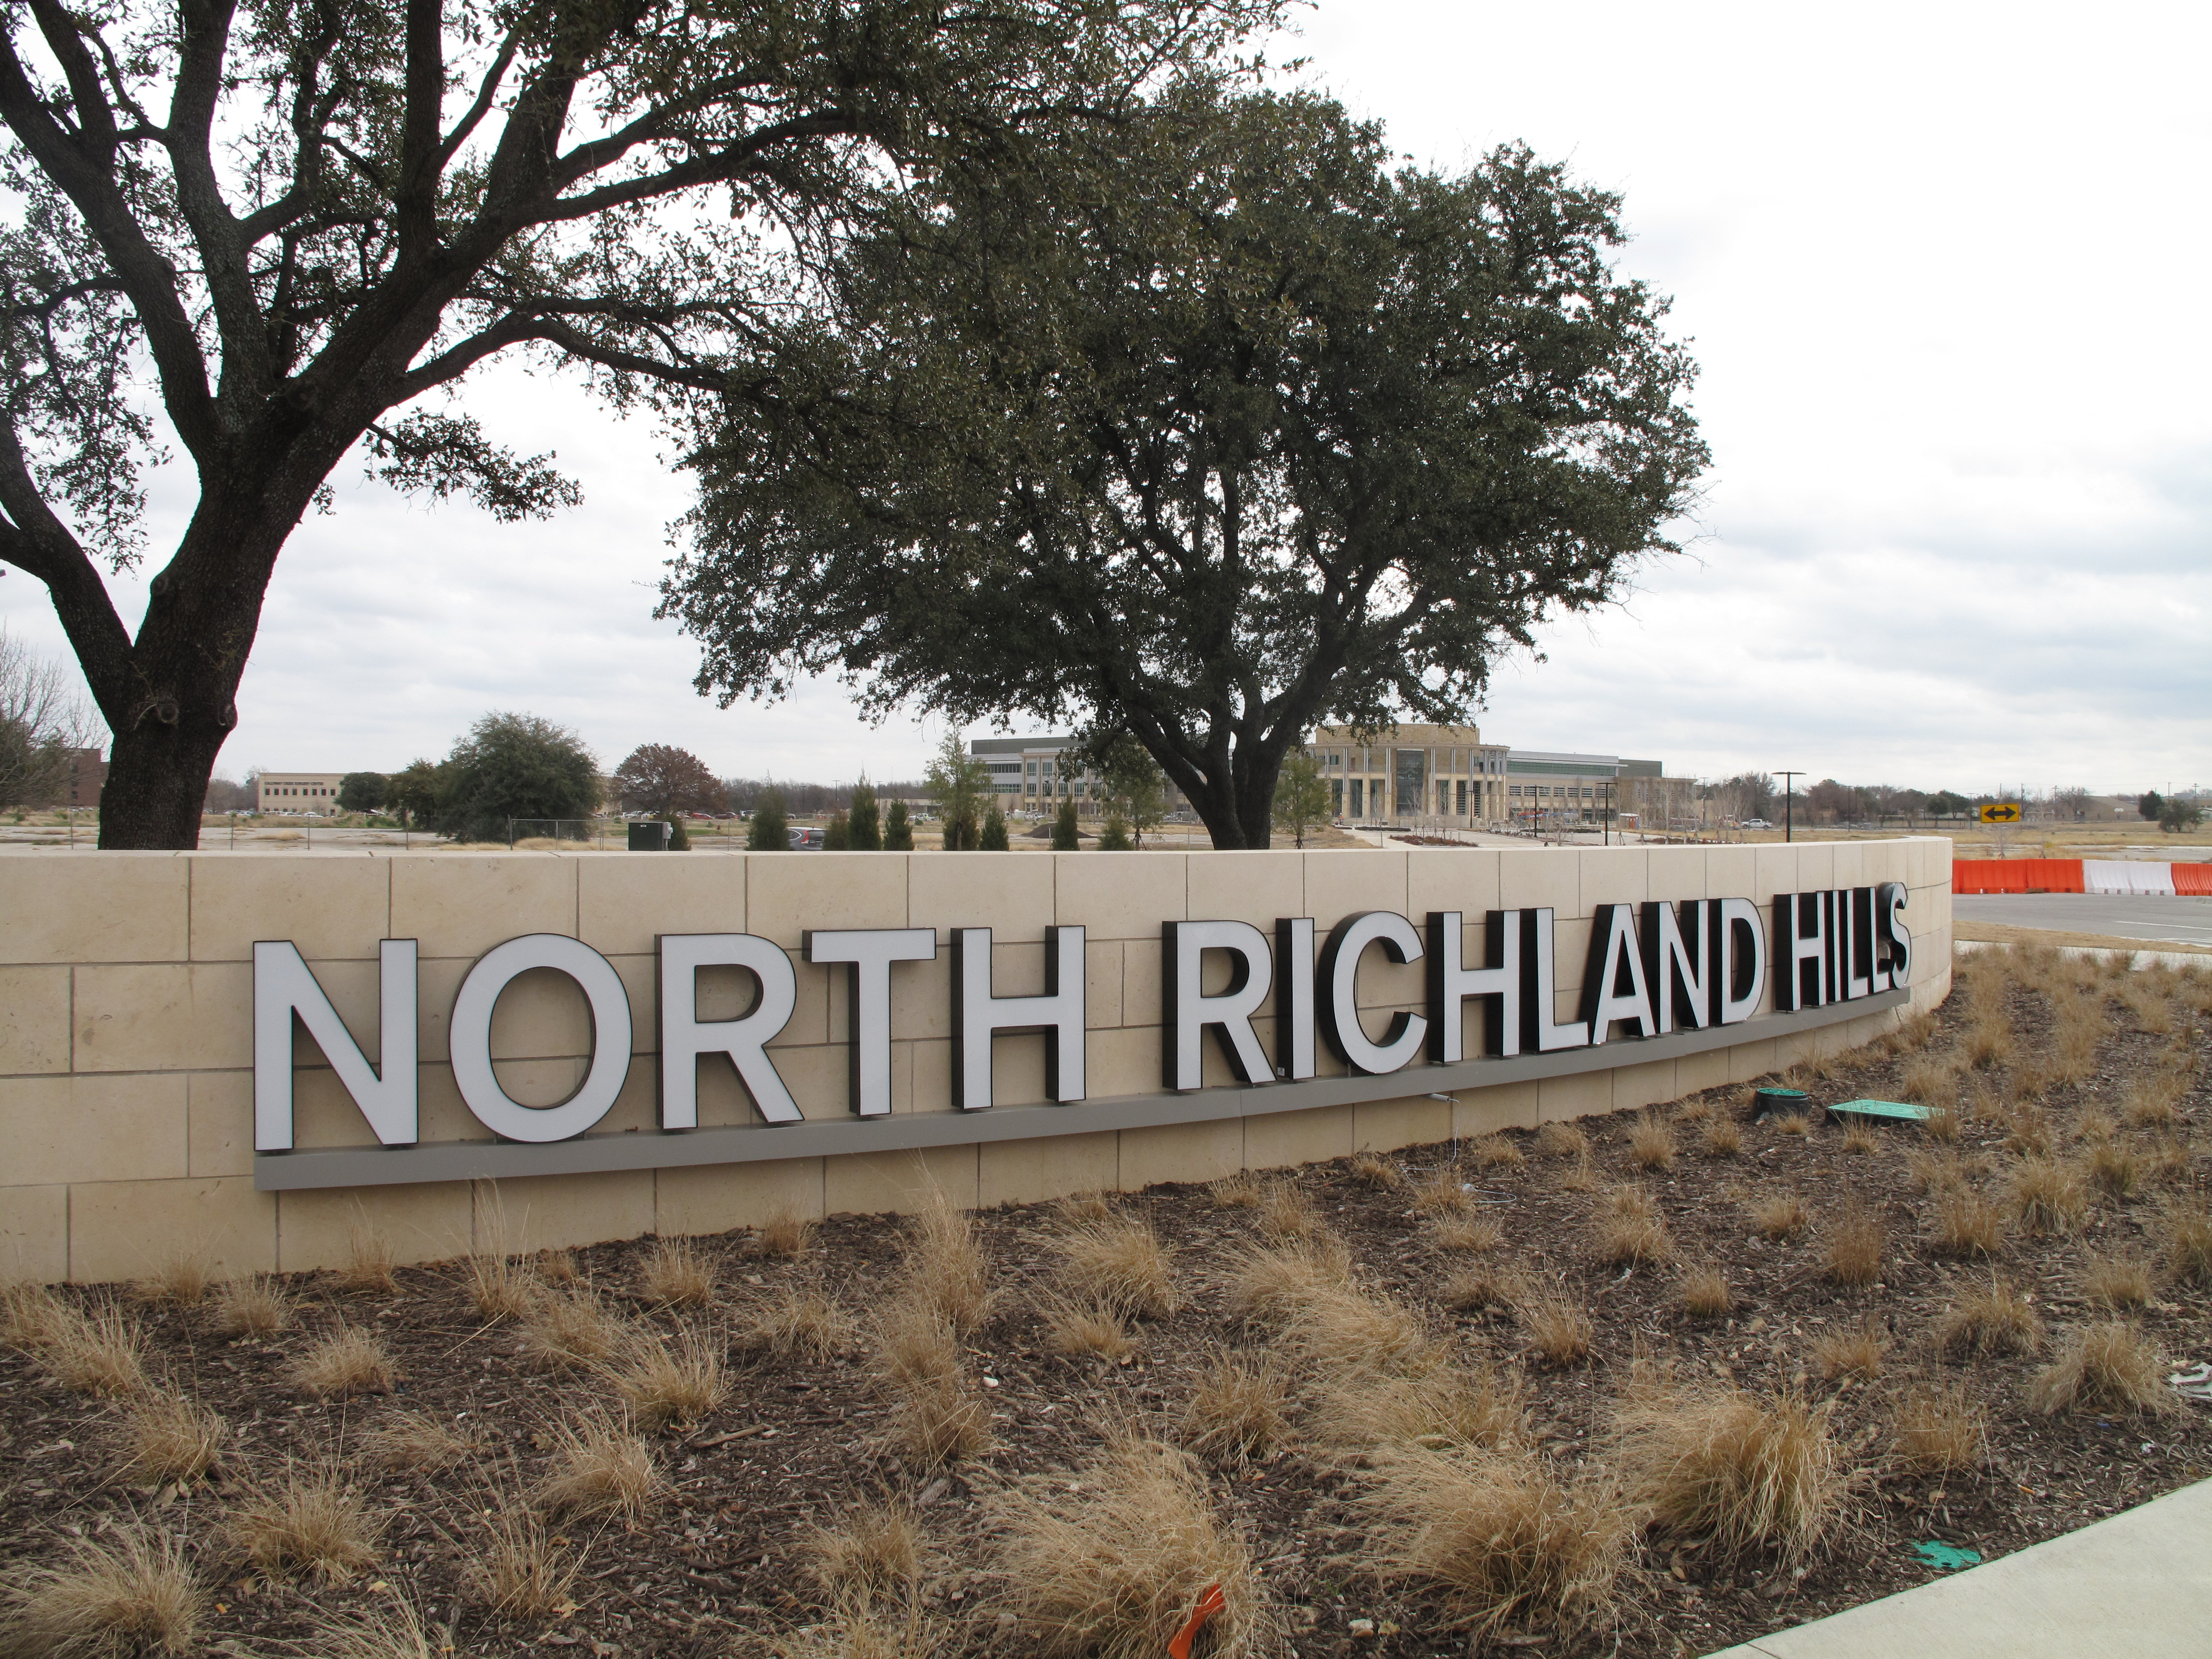 North Richland Hills